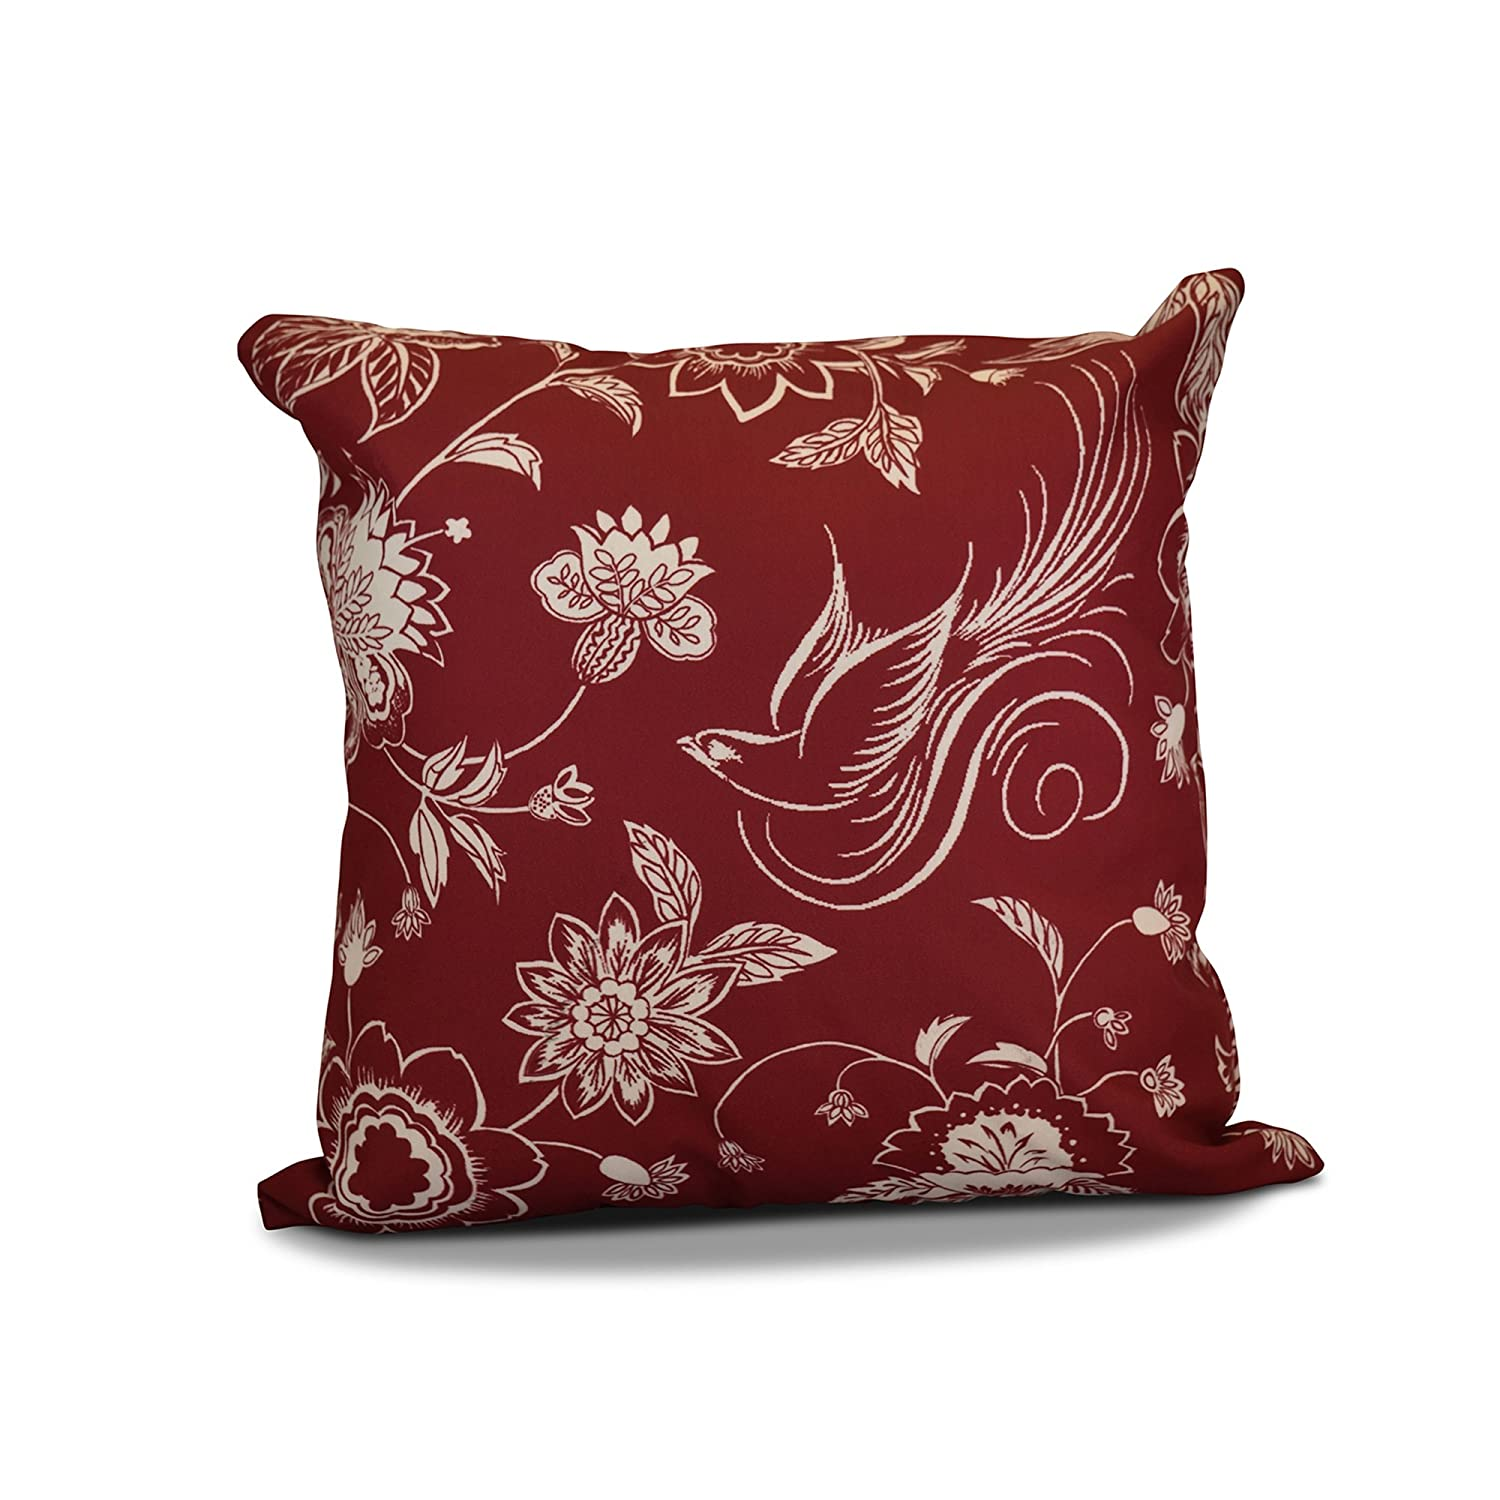 Floral Print E by design PHFN672RE6IV2-20 Decorative Holiday Pillow Cranberry